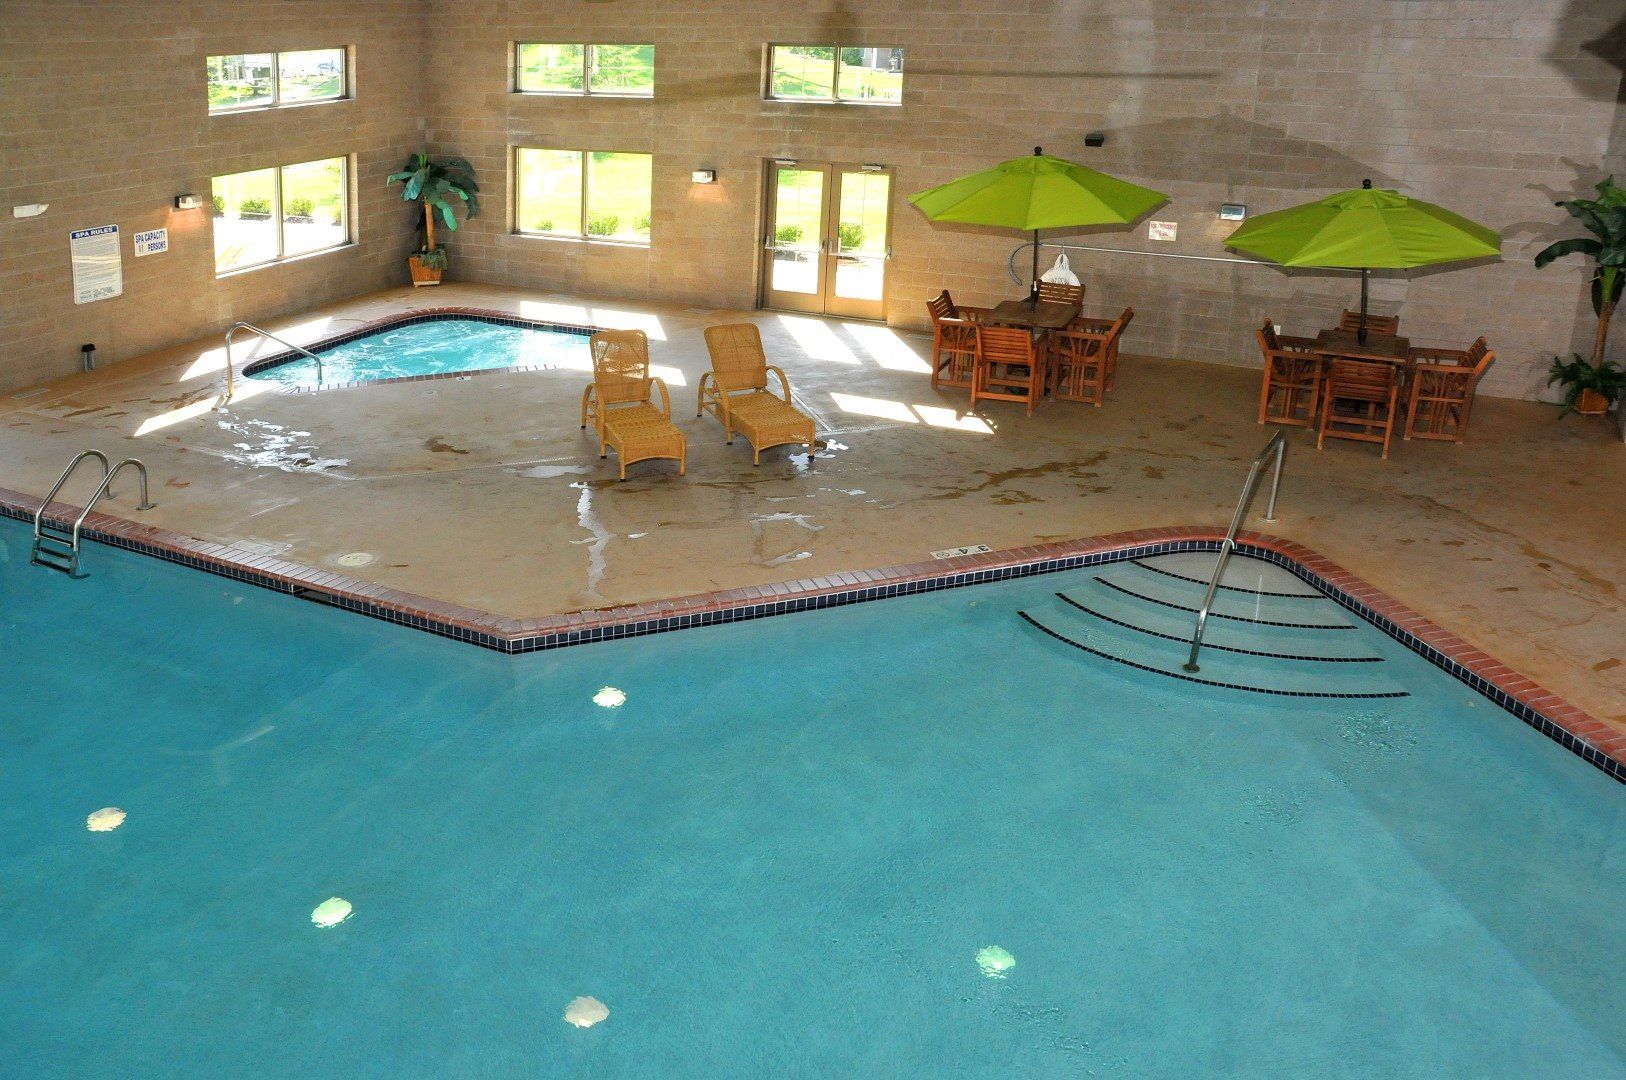 Photos and video of chaska place apartments in chaska mn - Public indoor swimming pools el paso tx ...